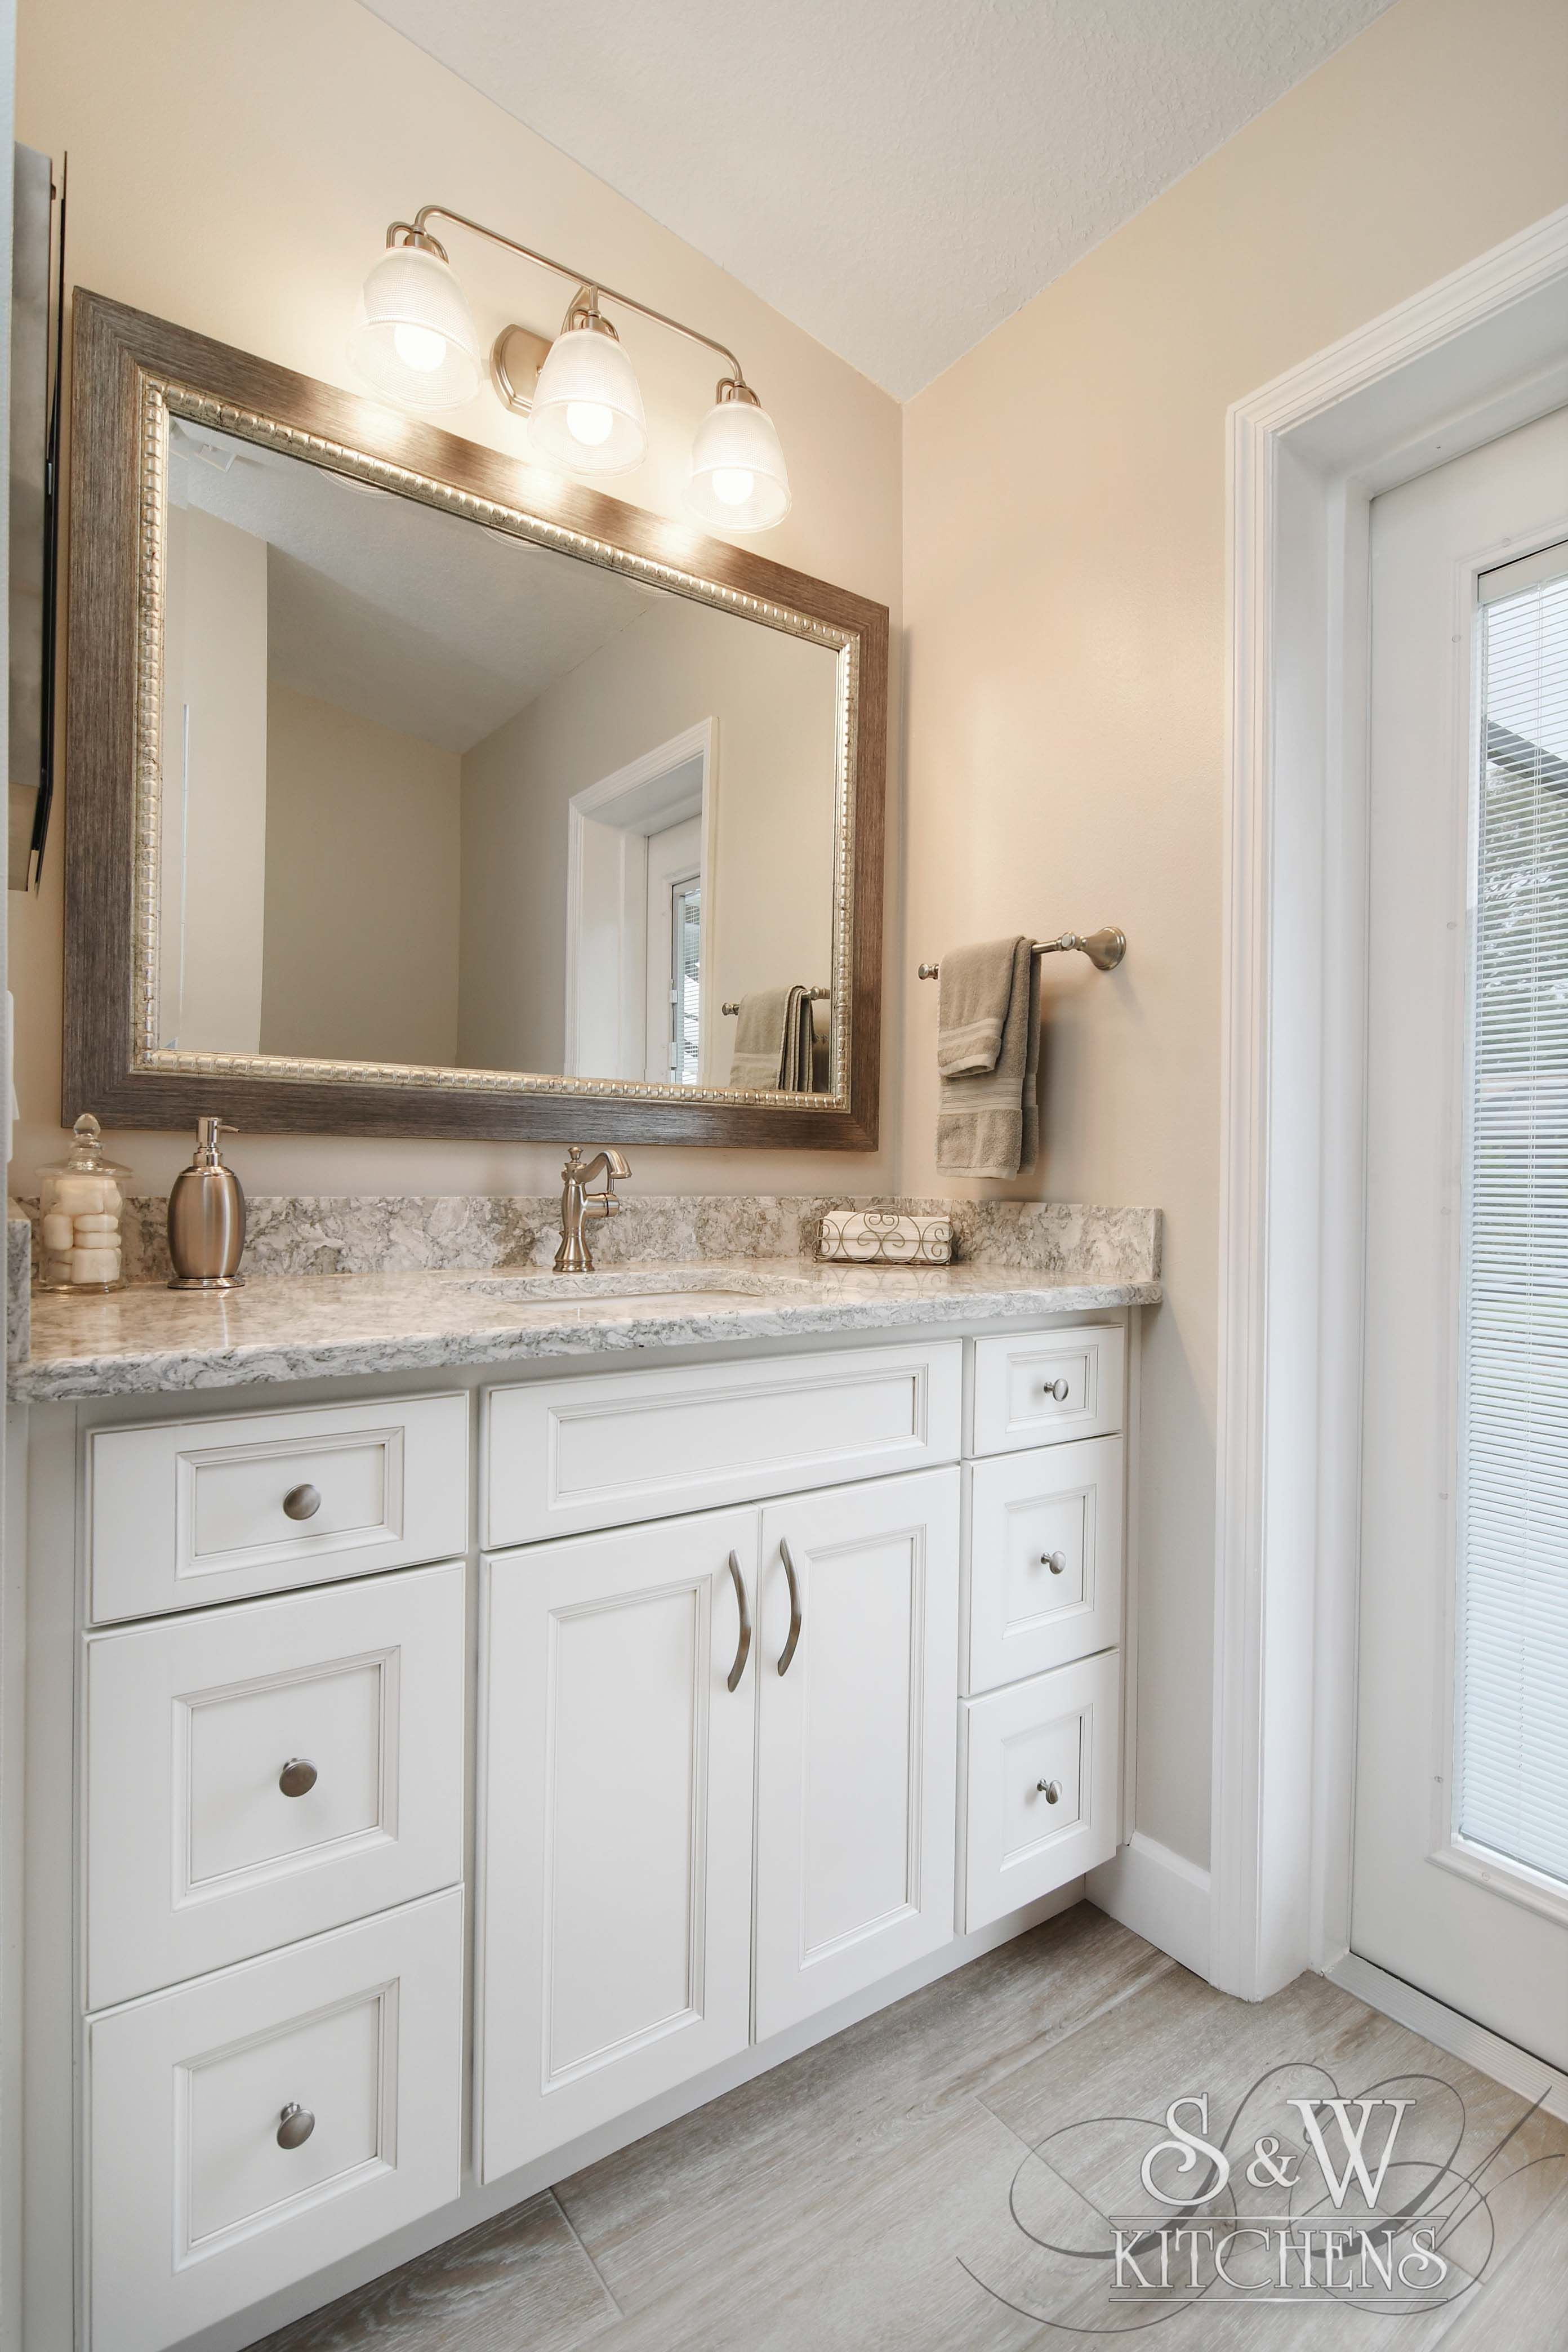 What i like multiple drawers and center cabinet for guest bathroom